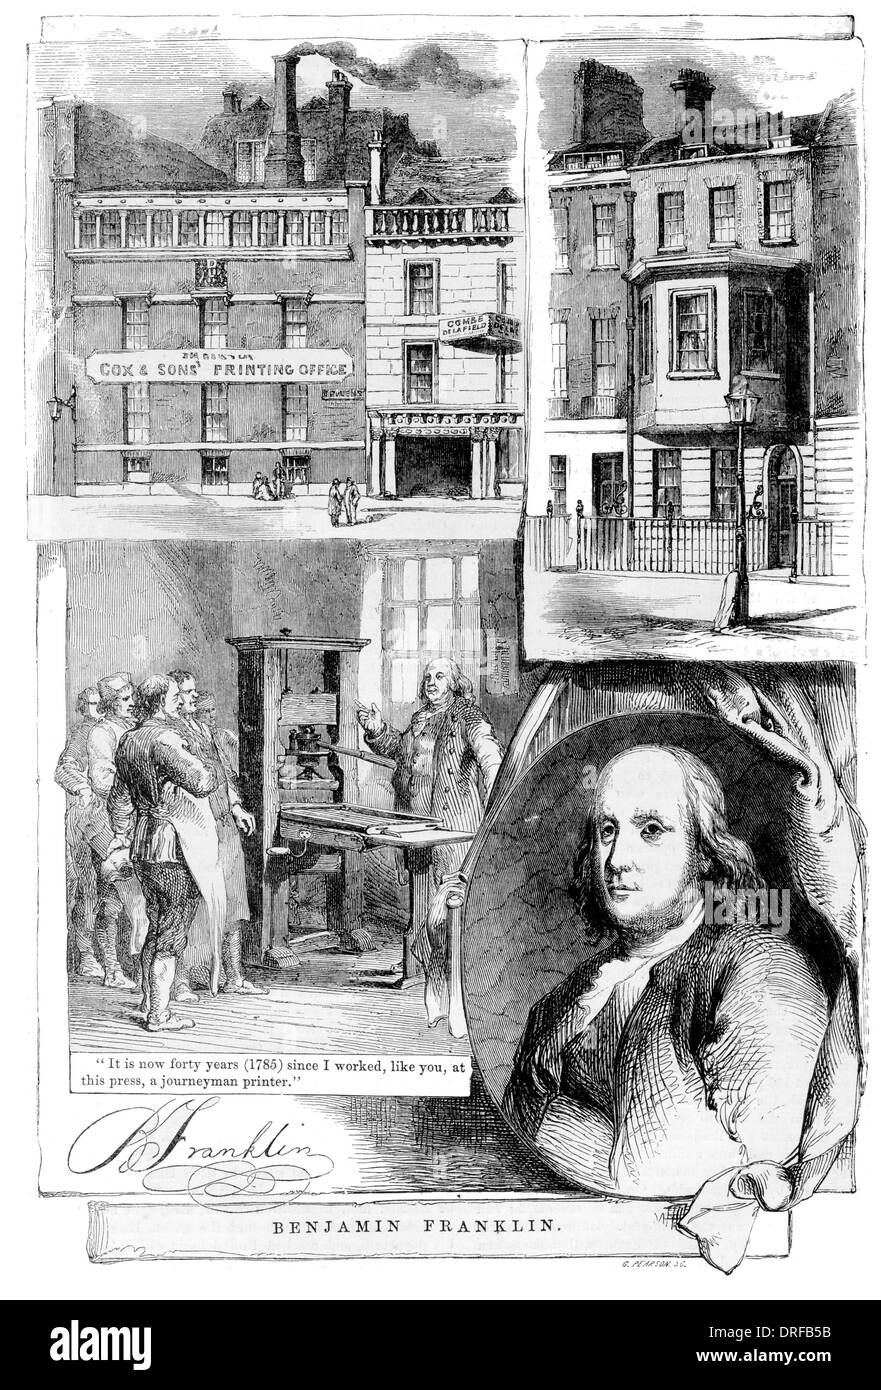 Benjamin Franklin. The printing office Messrs, Cox Brothers, Great Queen Street, Lincoln's Inn Fields. The house he resided in. - Stock Image